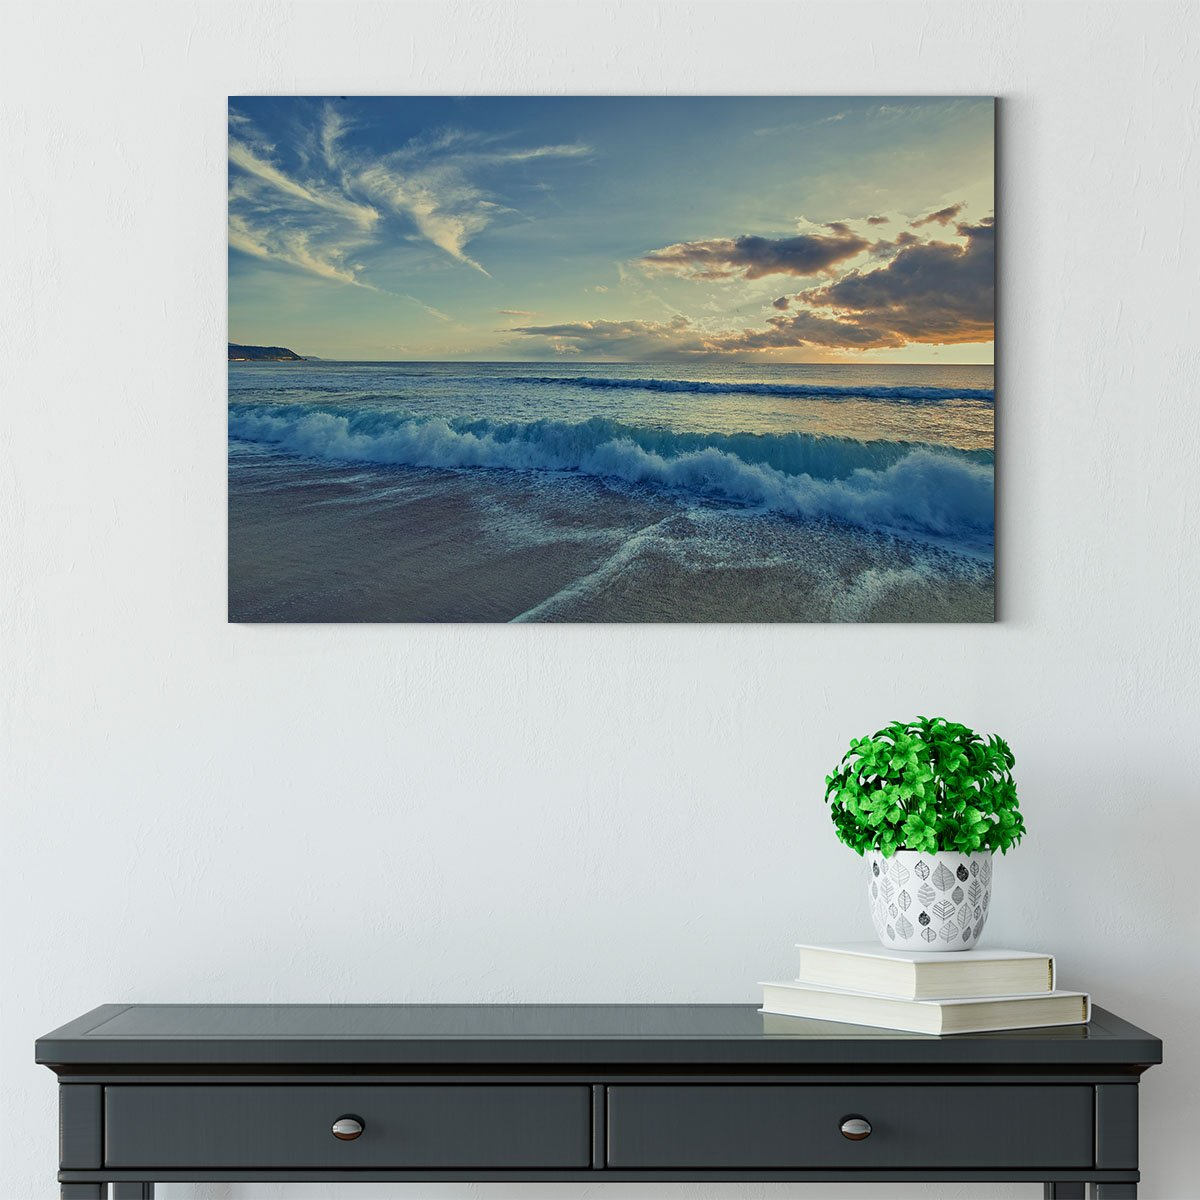 As night fell the impact of the waves on the beach Decorating Print 73